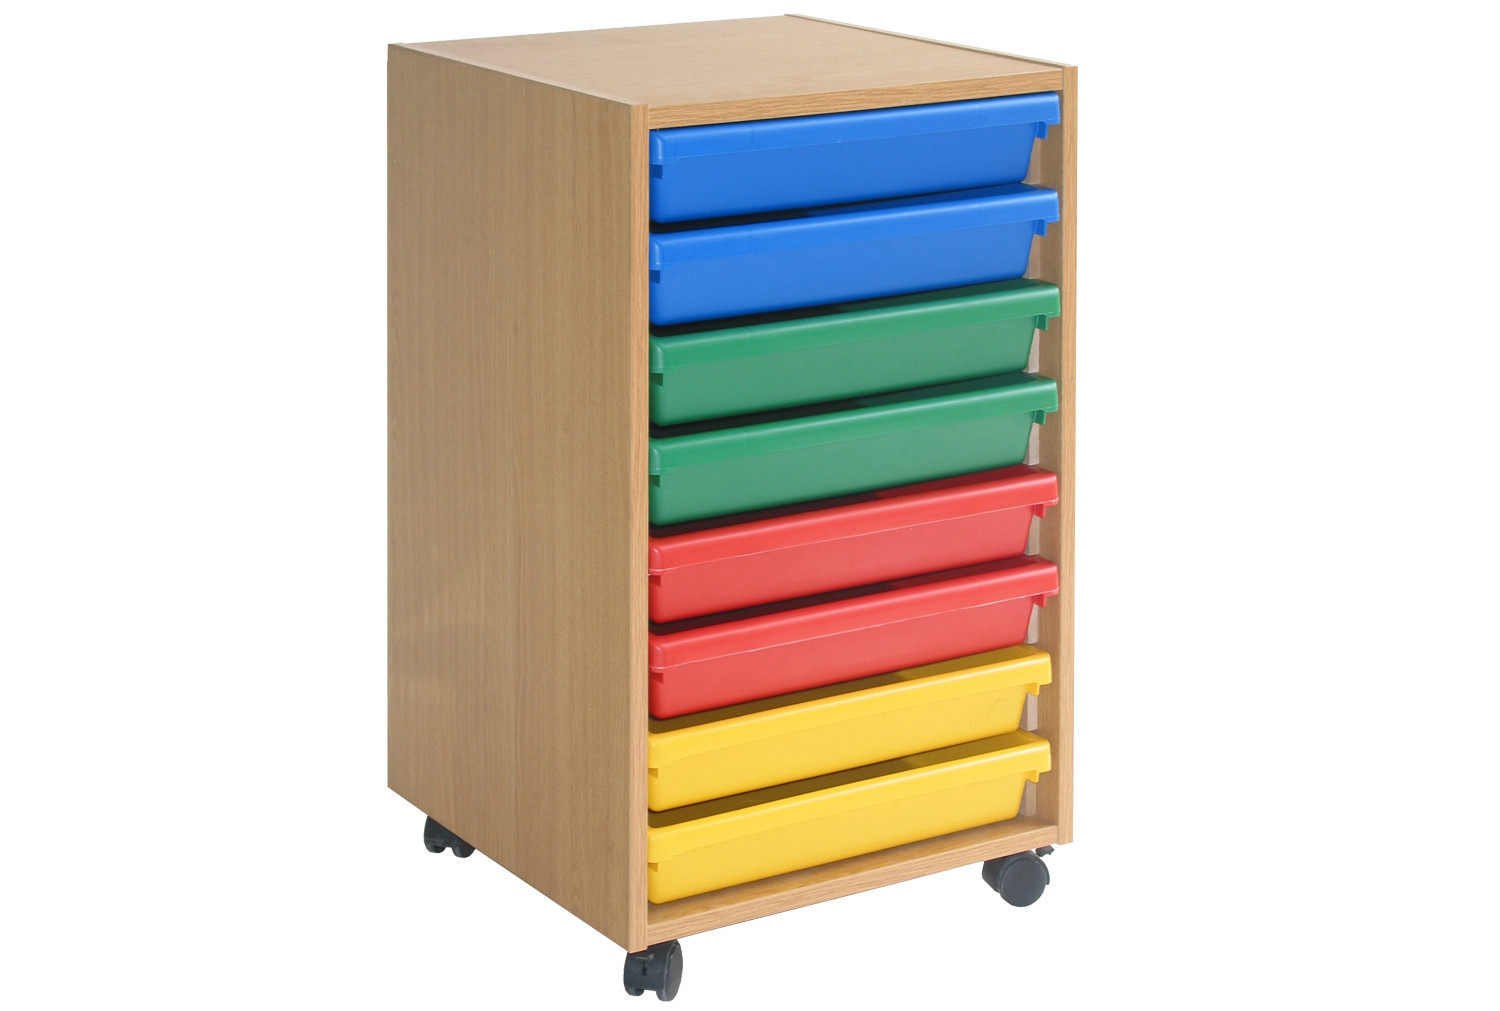 A3 Paper storage unit with 8 trays